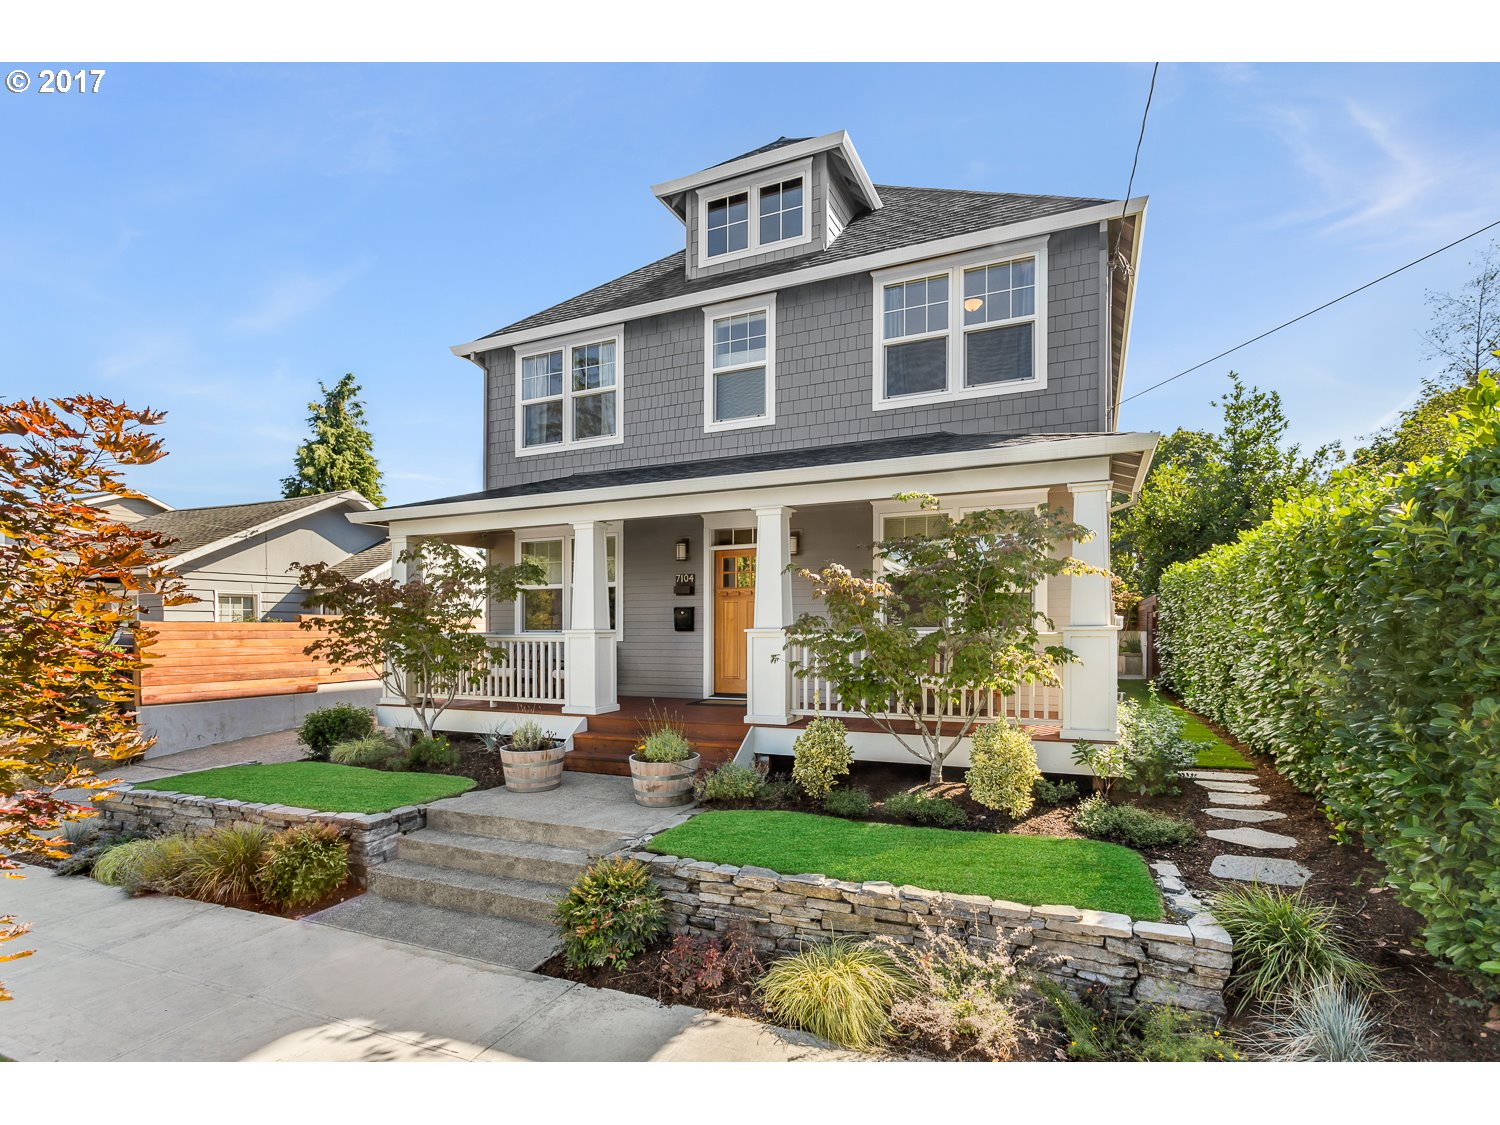 OPEN 9/24 SUN 1-3! Meticulously upgraded new construction home outshines the competition w/ top-notch modern design in every room. Incredible entertaining potential w/ an open main level that flows seamlessly into the thoughtfully improved backyard featuring custom old growth redwood benches, an outdoor kitchen, water feature, elegant hardscapes & dog run w/ SYNLawn pet turf & ZeoFill. See the attached upgrades list for more details.